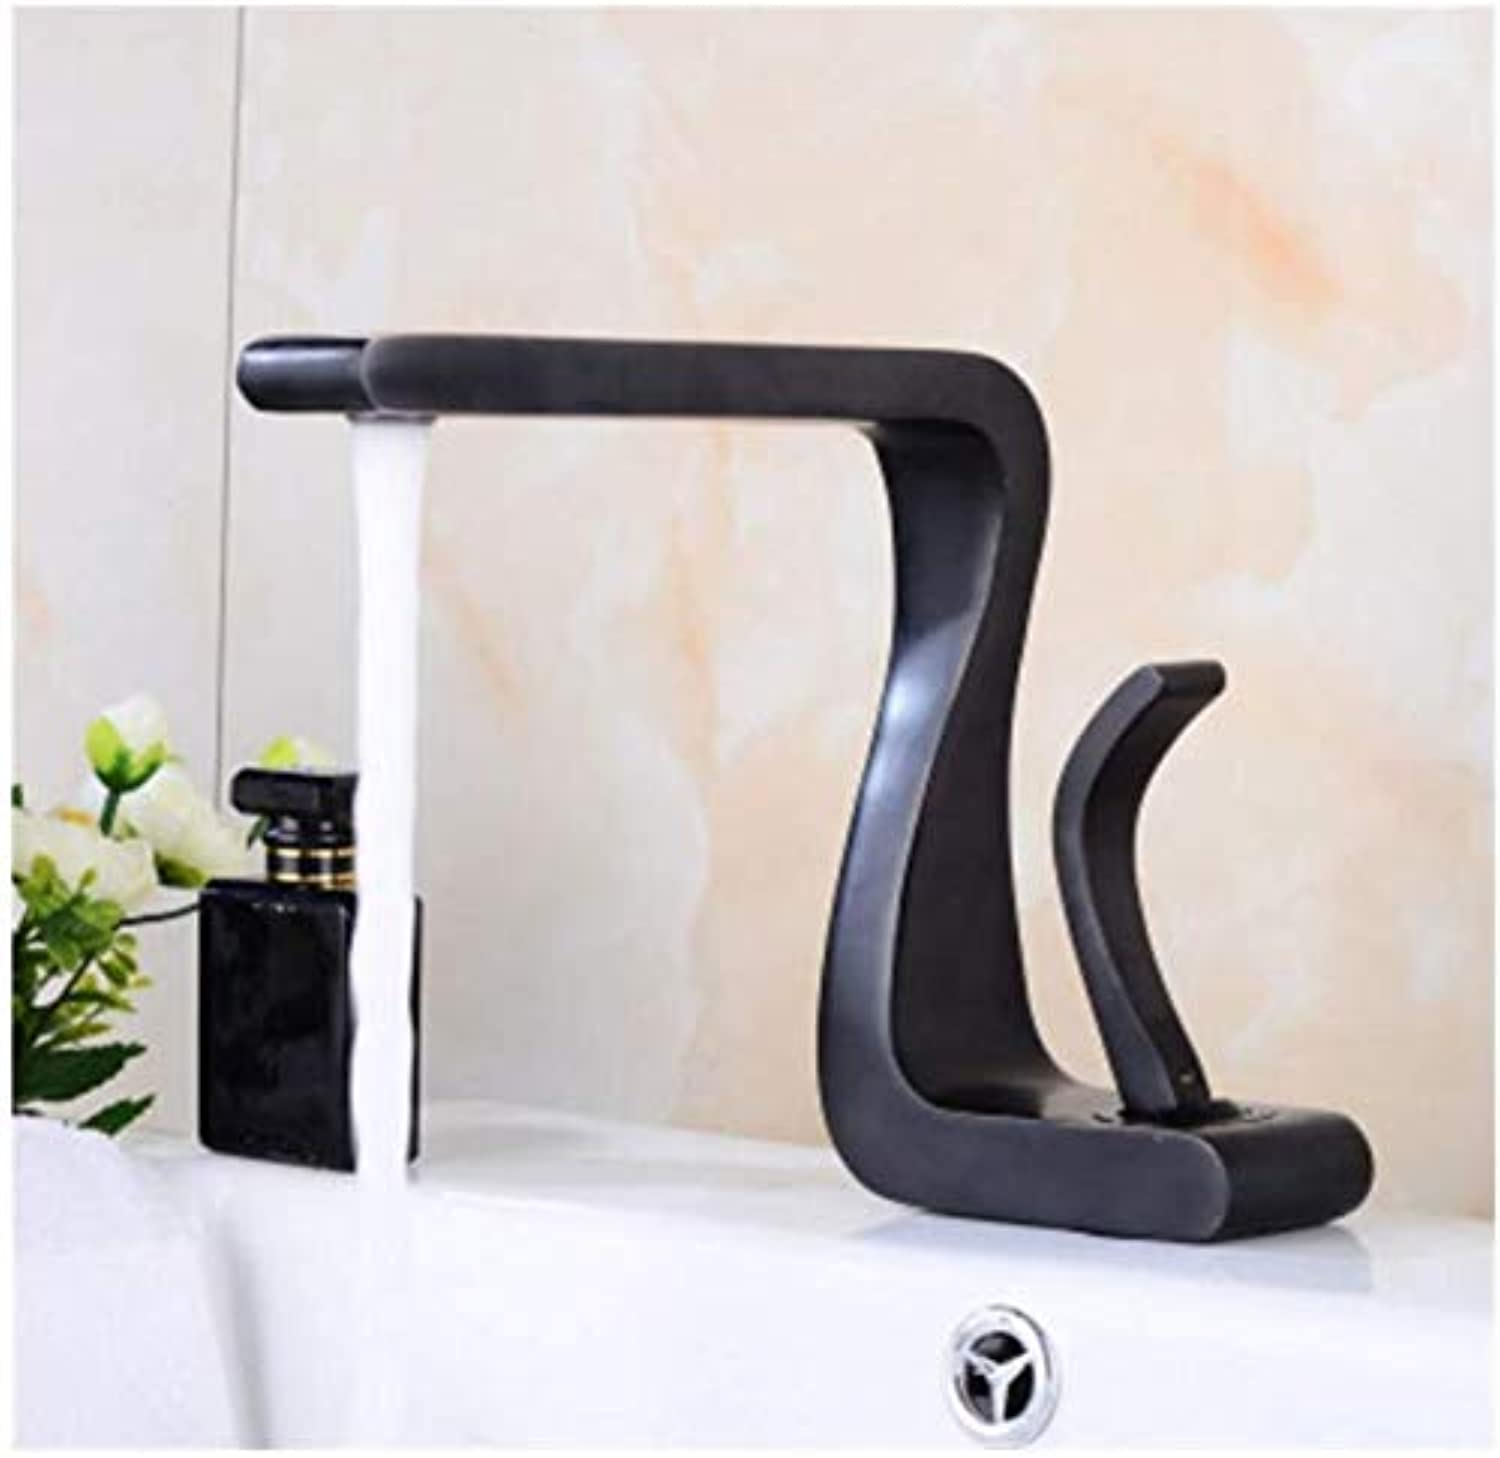 Modern Double Basin Sink Hot and Cold Water Faucet Faucet Single Handle Hot & Cold Mixer Tap